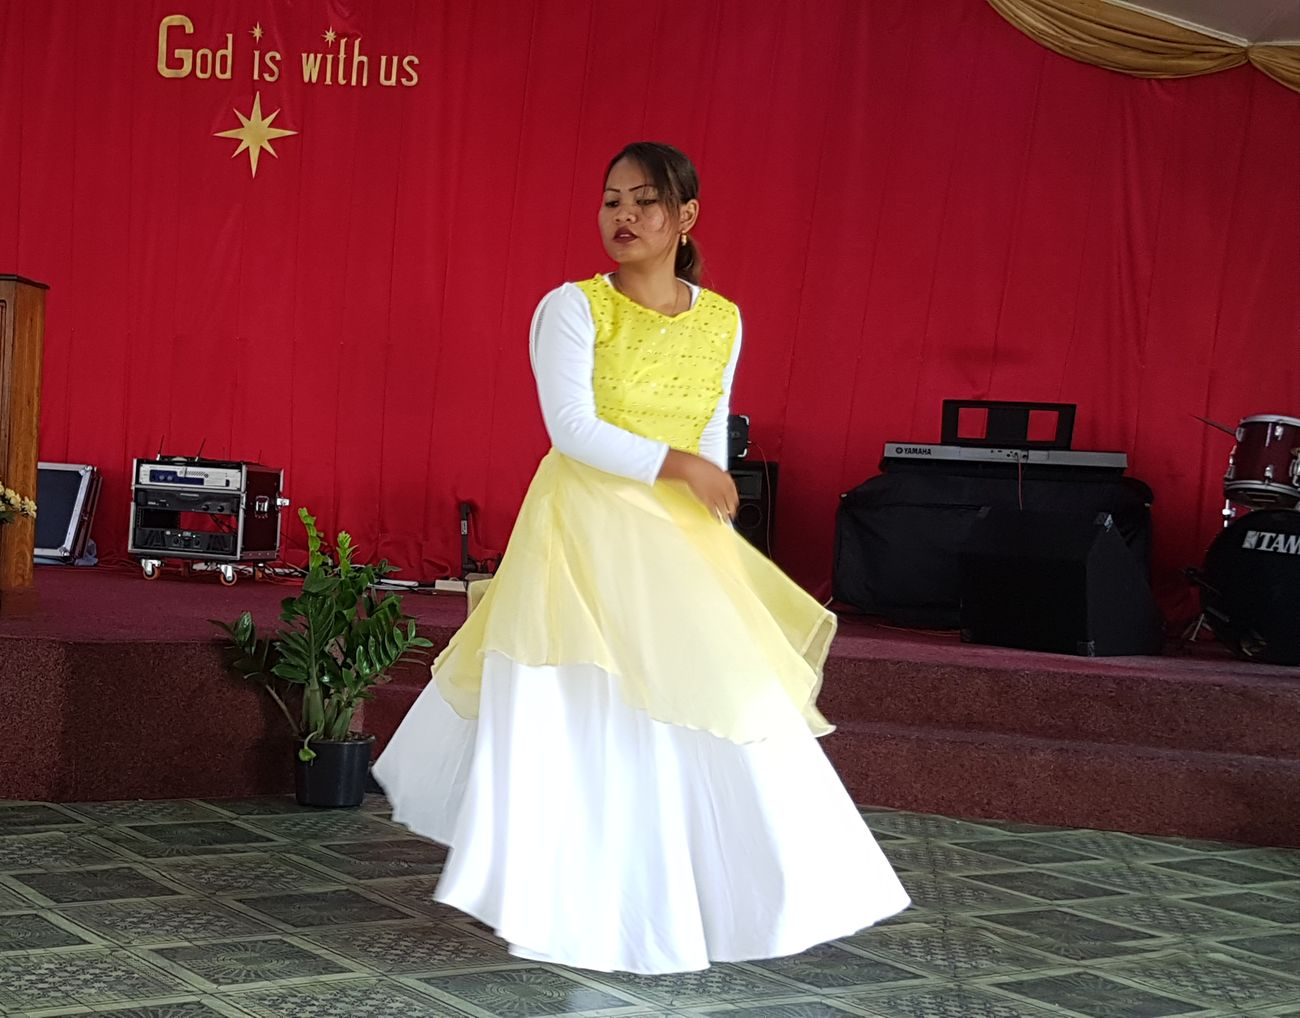 Your Loving Kindness Has Never Failed Me ❤ Only Women Dancing Worshiping God Worship Dance Hillsong I Need You ♥ Every Moment Thankful Easter Sunday Easter Dance Celebration Happiness Memoriesmade Be Thankful For Everything You Have. Surinamese_Javanese Asian Woman Asian Girl Dancing Dress People Memorable Moment Memorableday